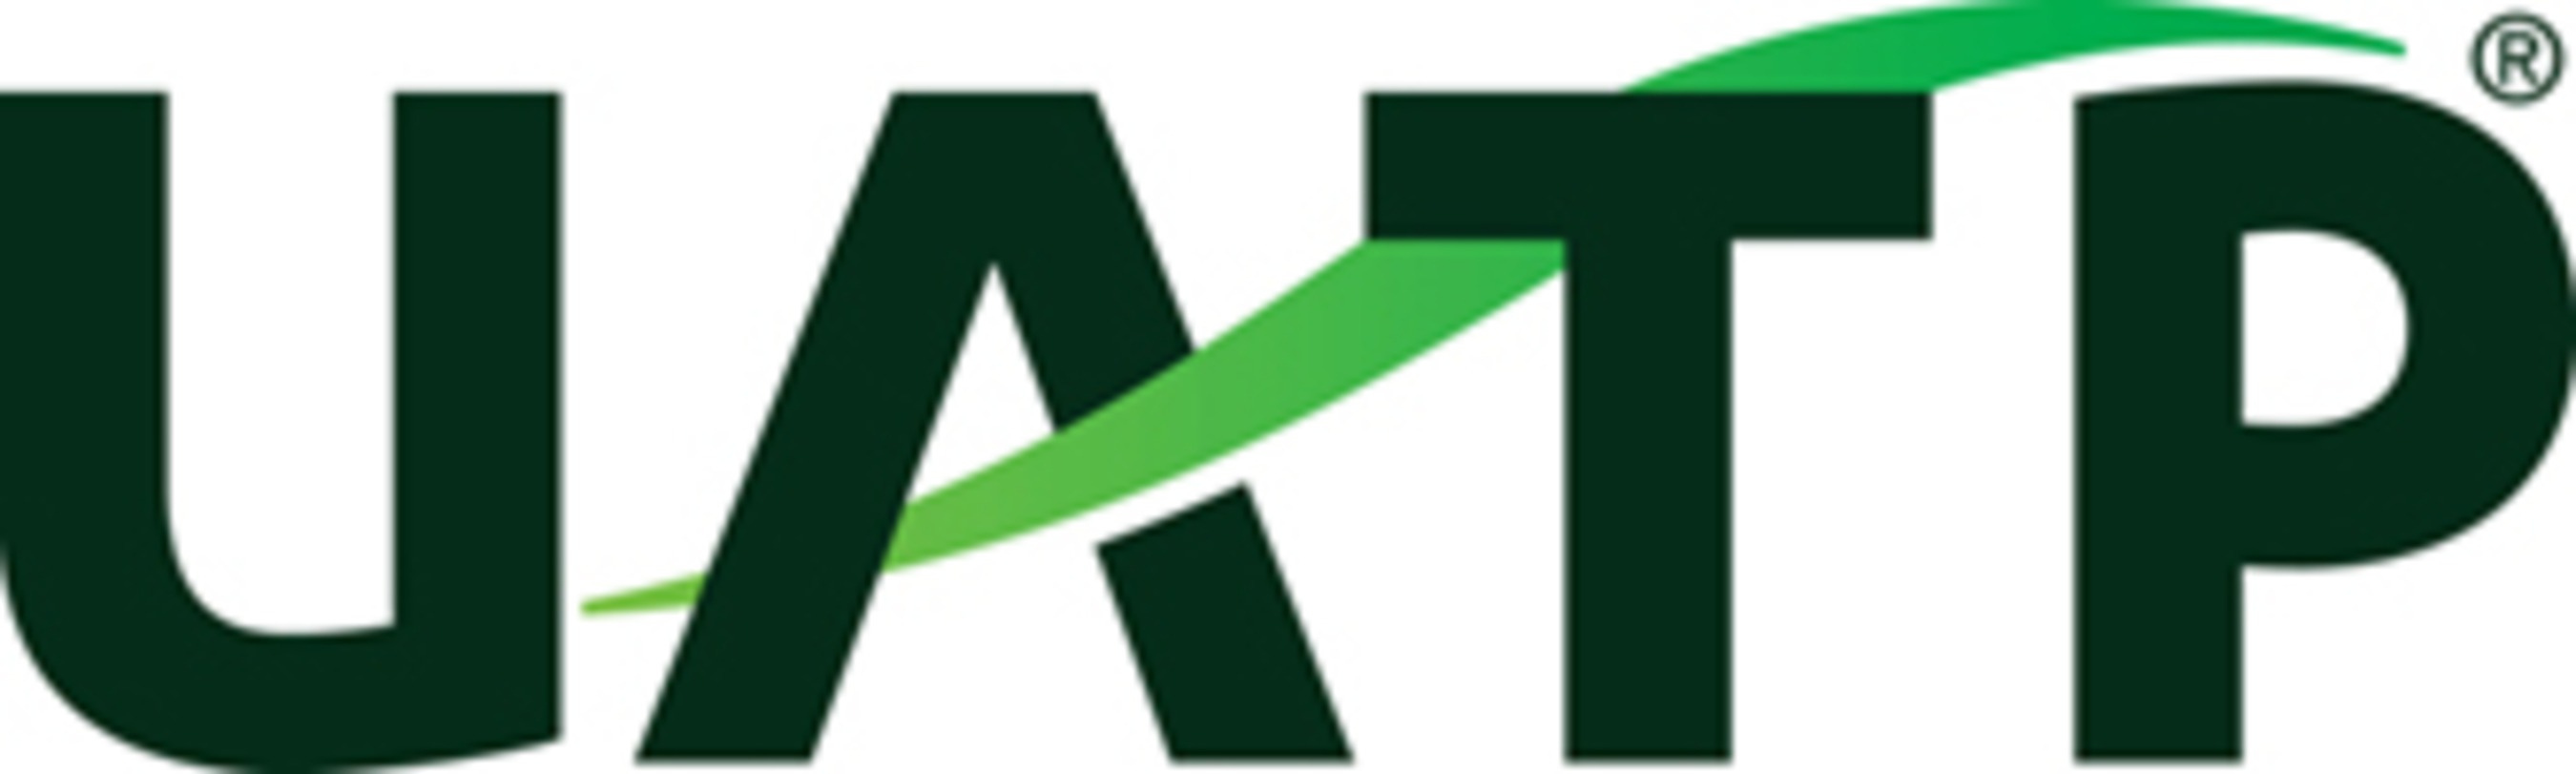 UATP is a global travel payment network. UATP accounts are actively issued by 15 member airlines and accepted as a form of payment for corporate business travel by more than 200 airlines worldwide. Airlines currently issuing UATP accounts include Aer Lingus, Air New Zealand, Alitalia, American Airlines, Austrian Airlines, British Airways, Continental Airlines, Delta Air Lines, Japan Airlines, KLM Royal Dutch Airlines, Lufthansa German Airlines, Qantas Airways, Ltd., Scandinavian Airlines System, ...